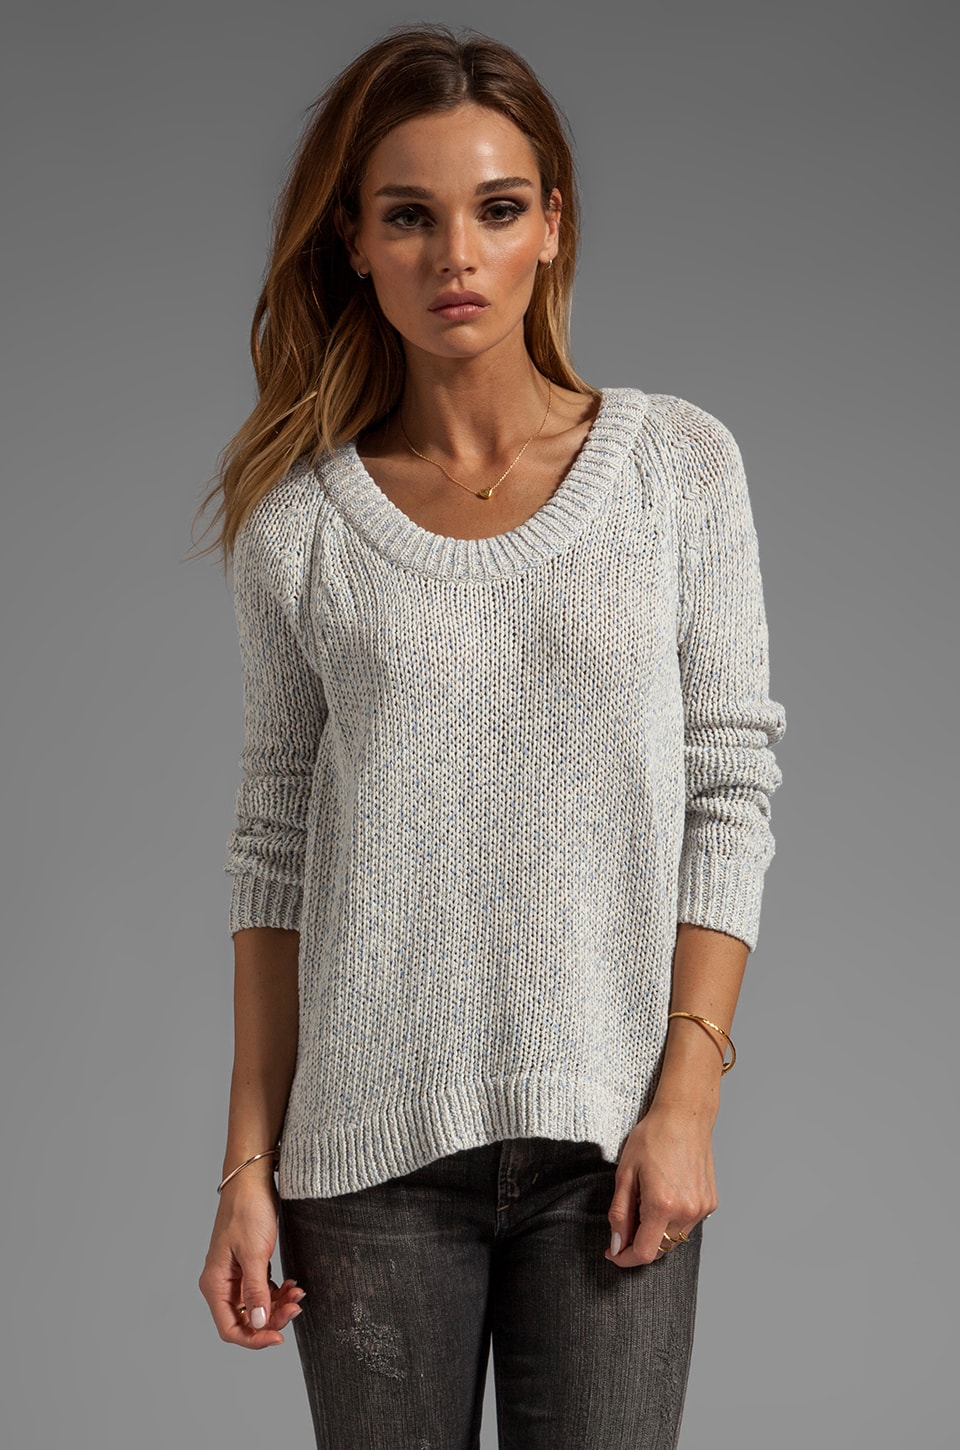 rag & bone/JEAN Candace Pullover Sweater in Ivory/Lavender